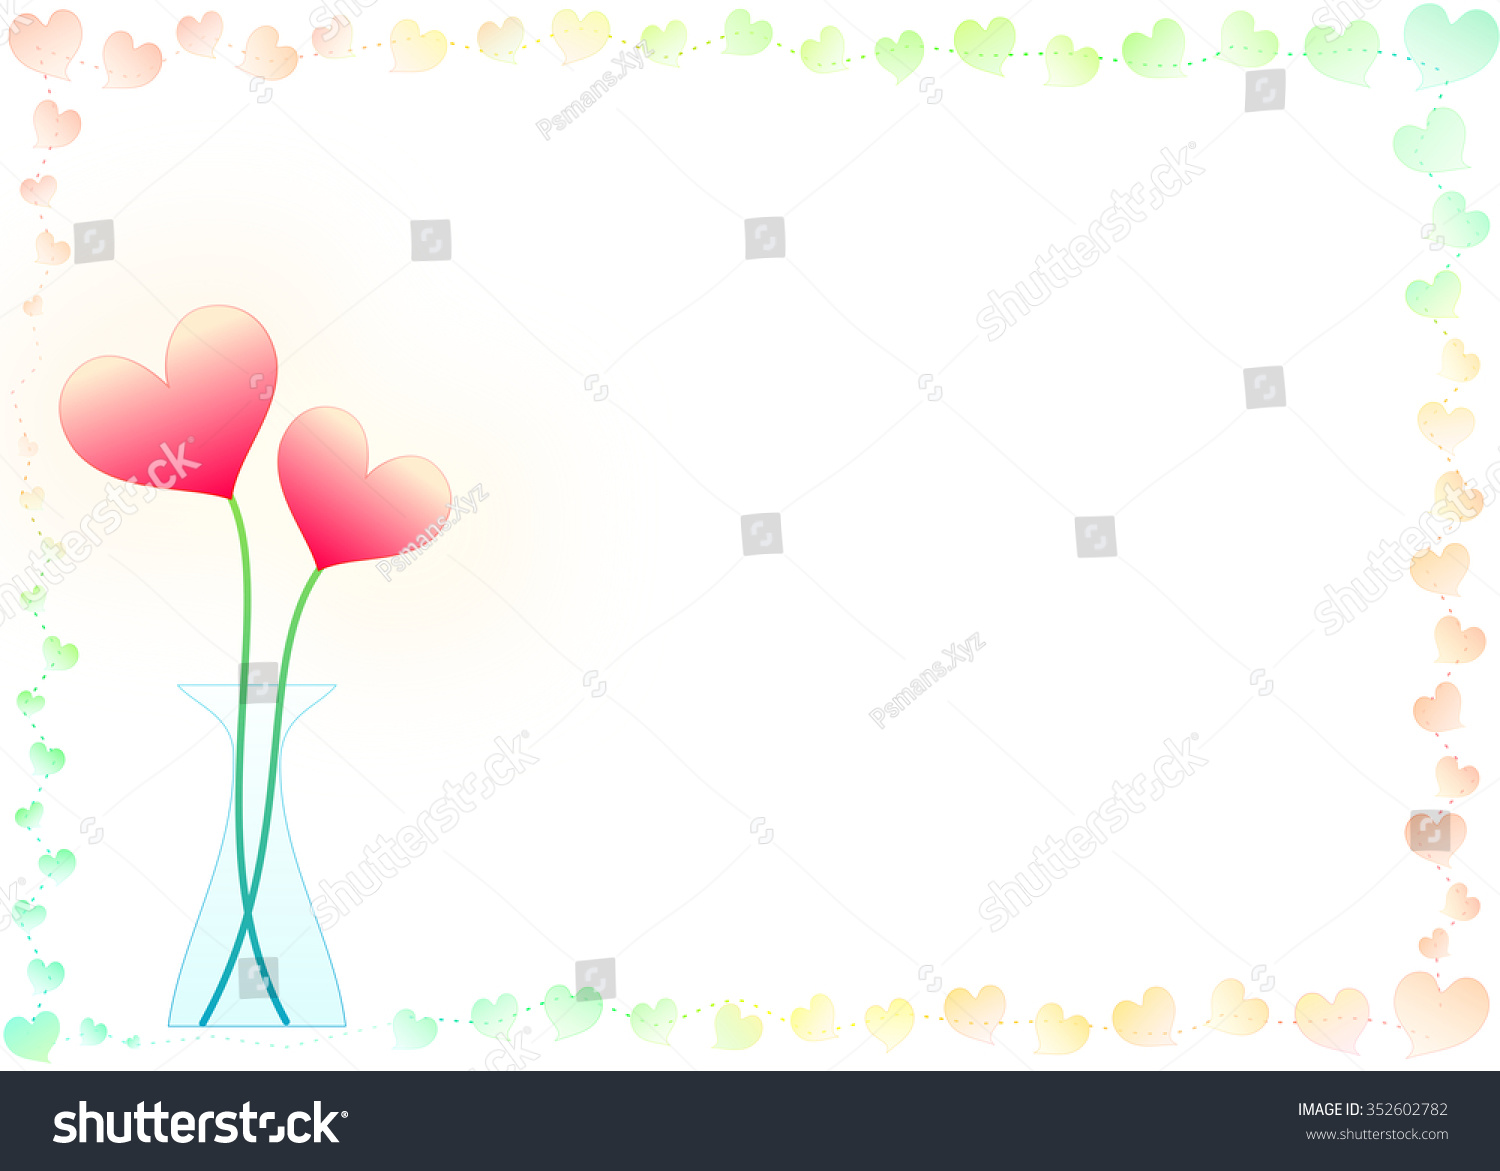 Heart shaped flowers glass vase sweet stock illustration 352602782 heart shaped flowers in the glass vase with sweet color hearts border and frame wallpaper illustration reviewsmspy